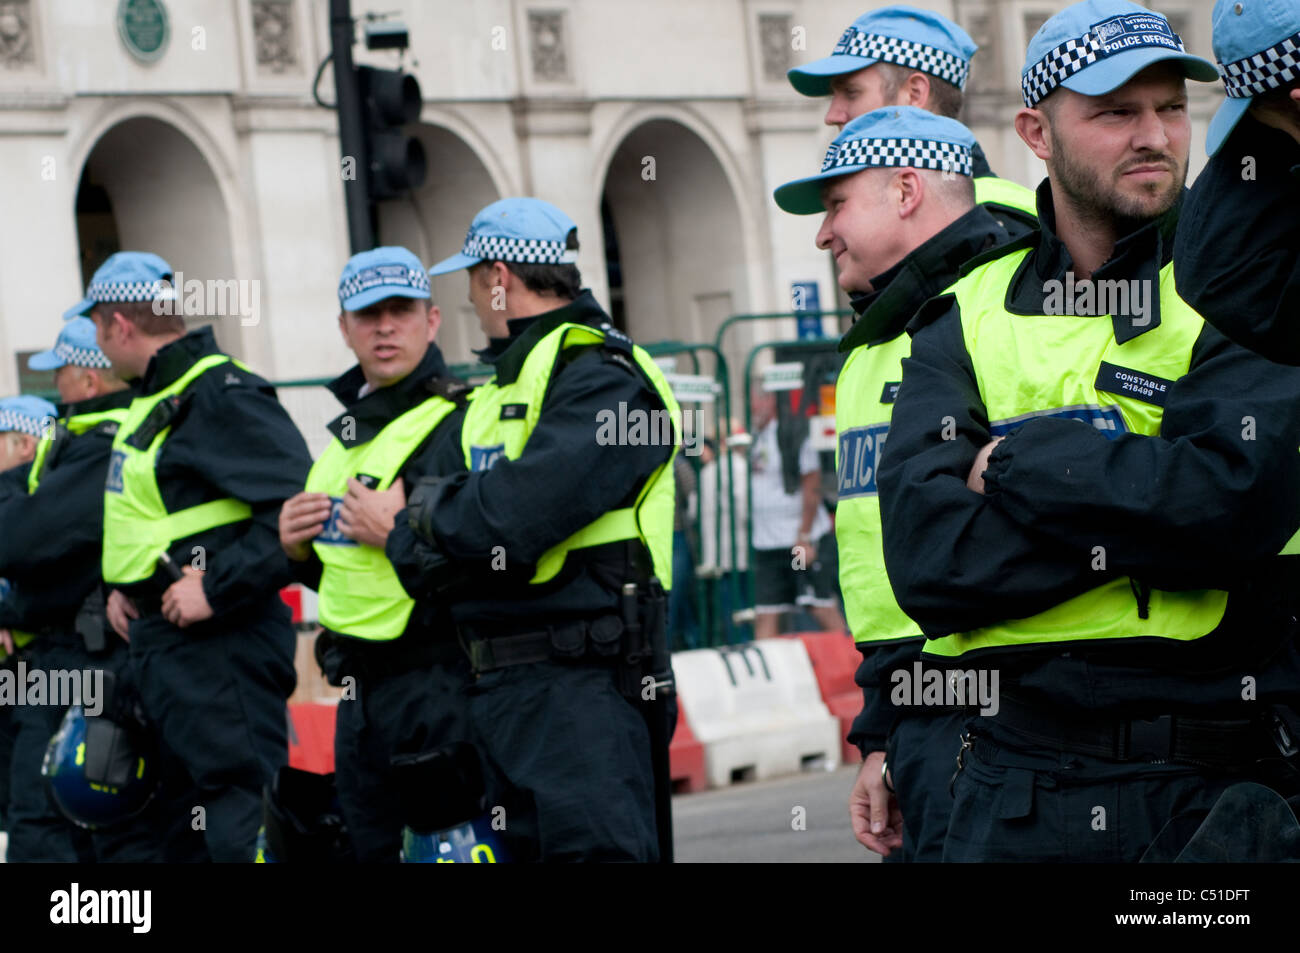 Riot police during Public sector pensions strike, London, 30/06/2011, UK - Stock Image